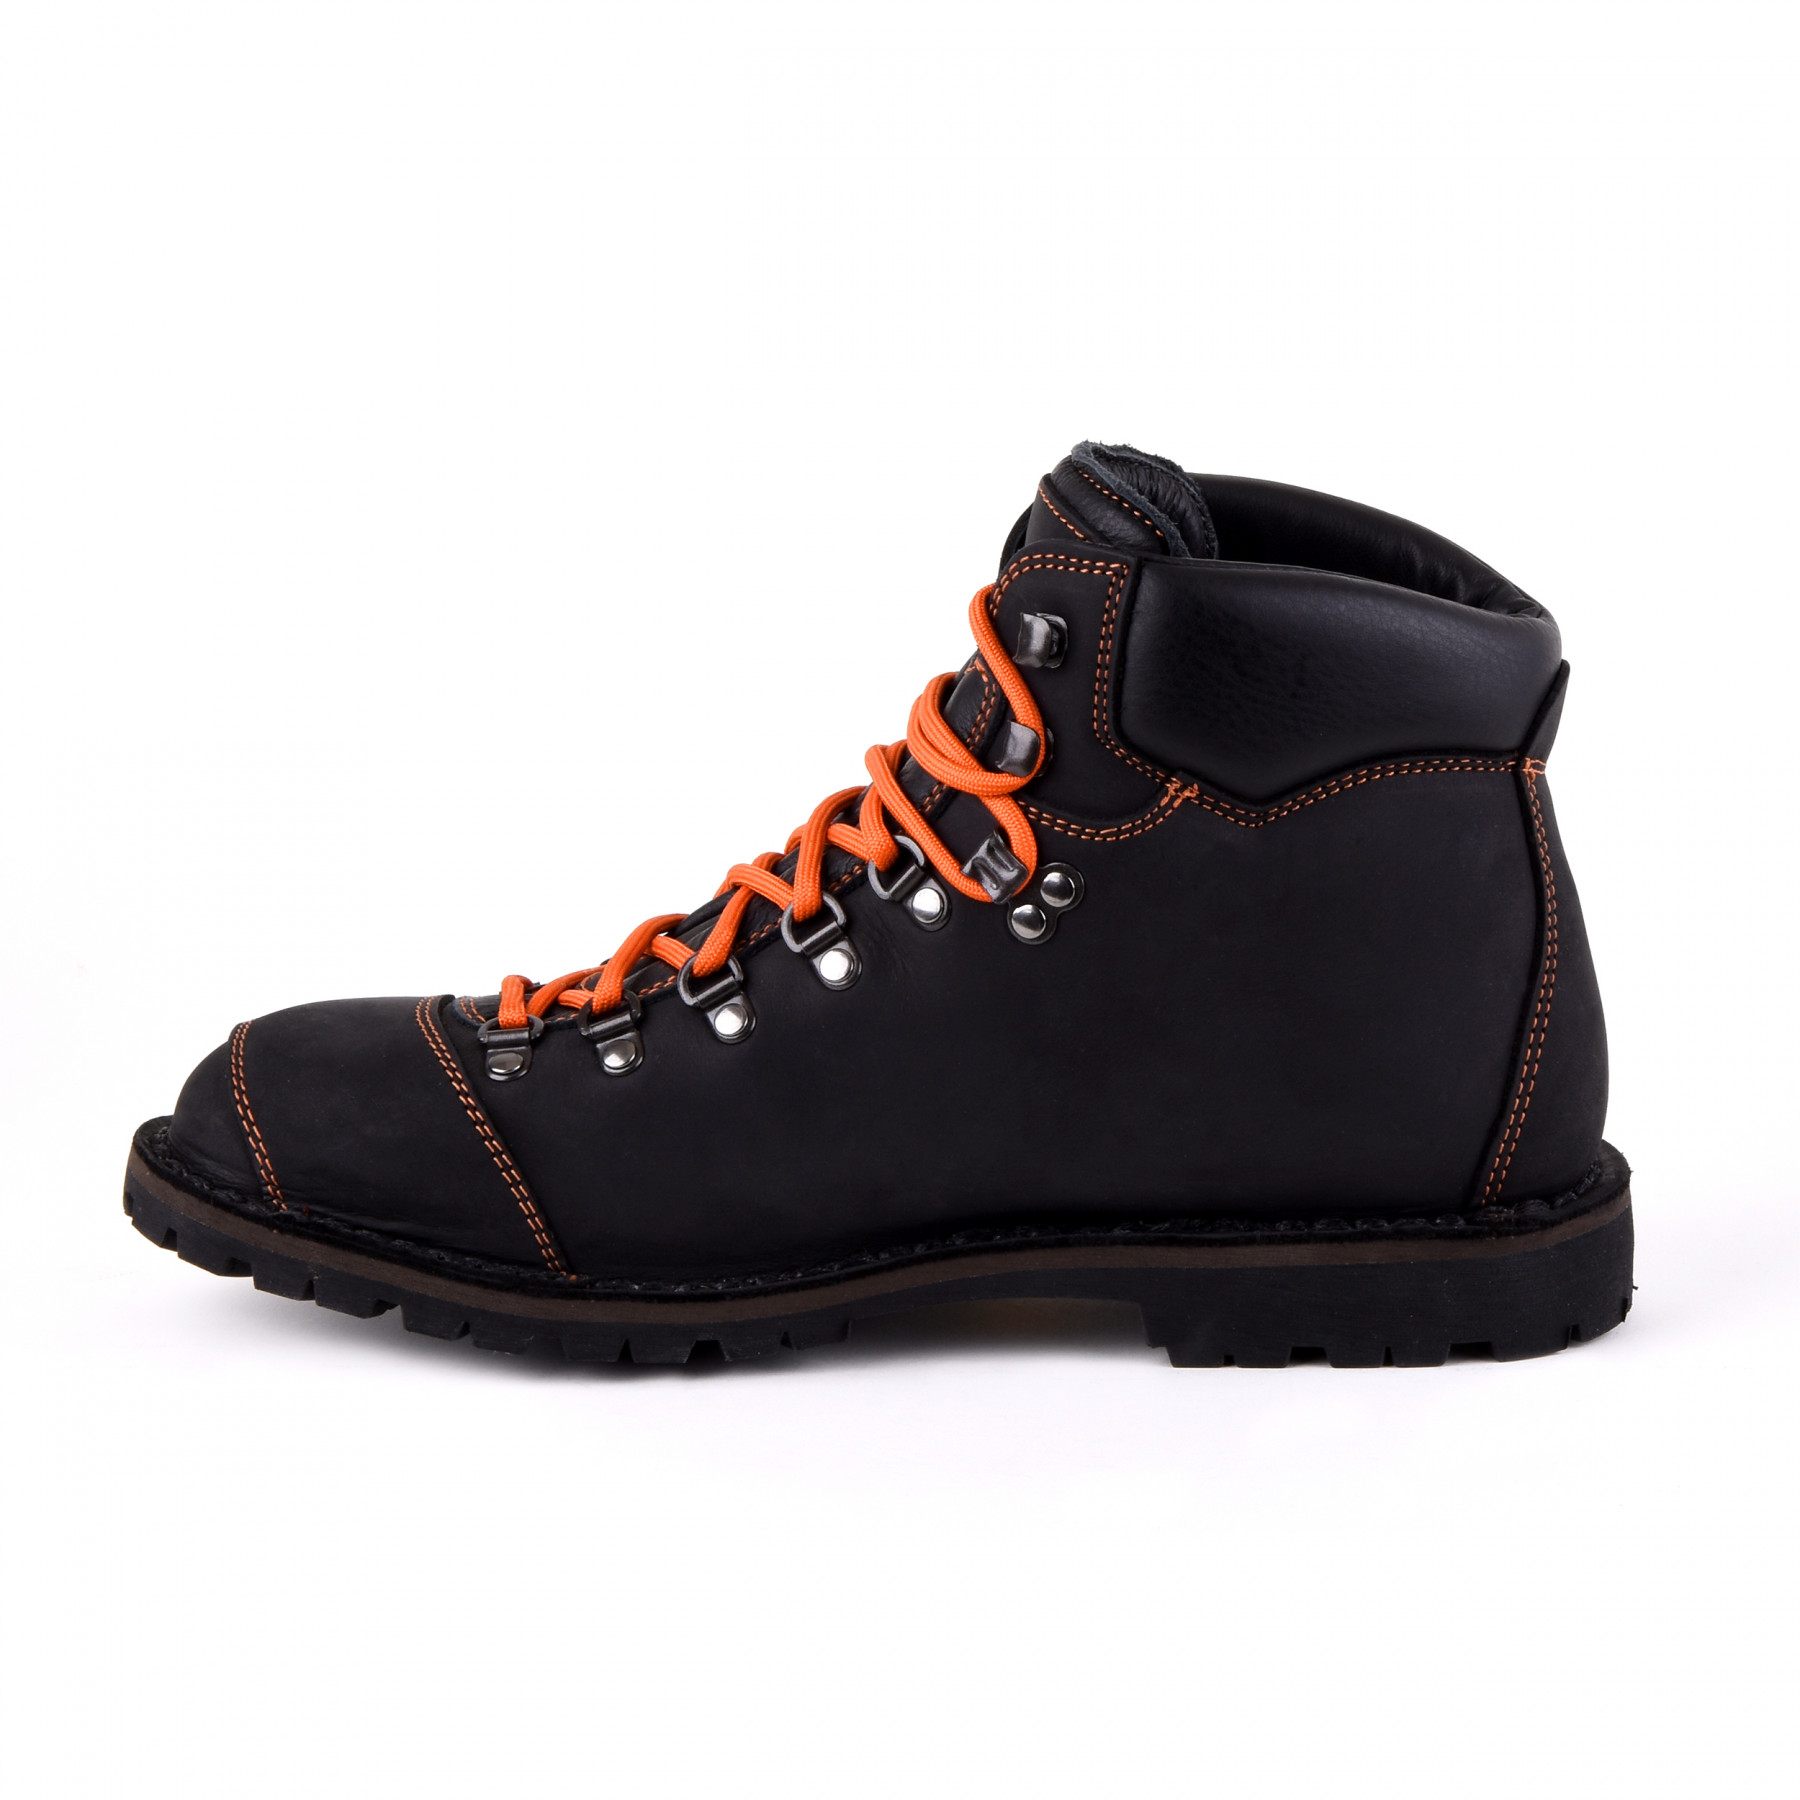 Biker Boot Adventure Denver Black, schwarze Damen Stiefel, orange Nähte